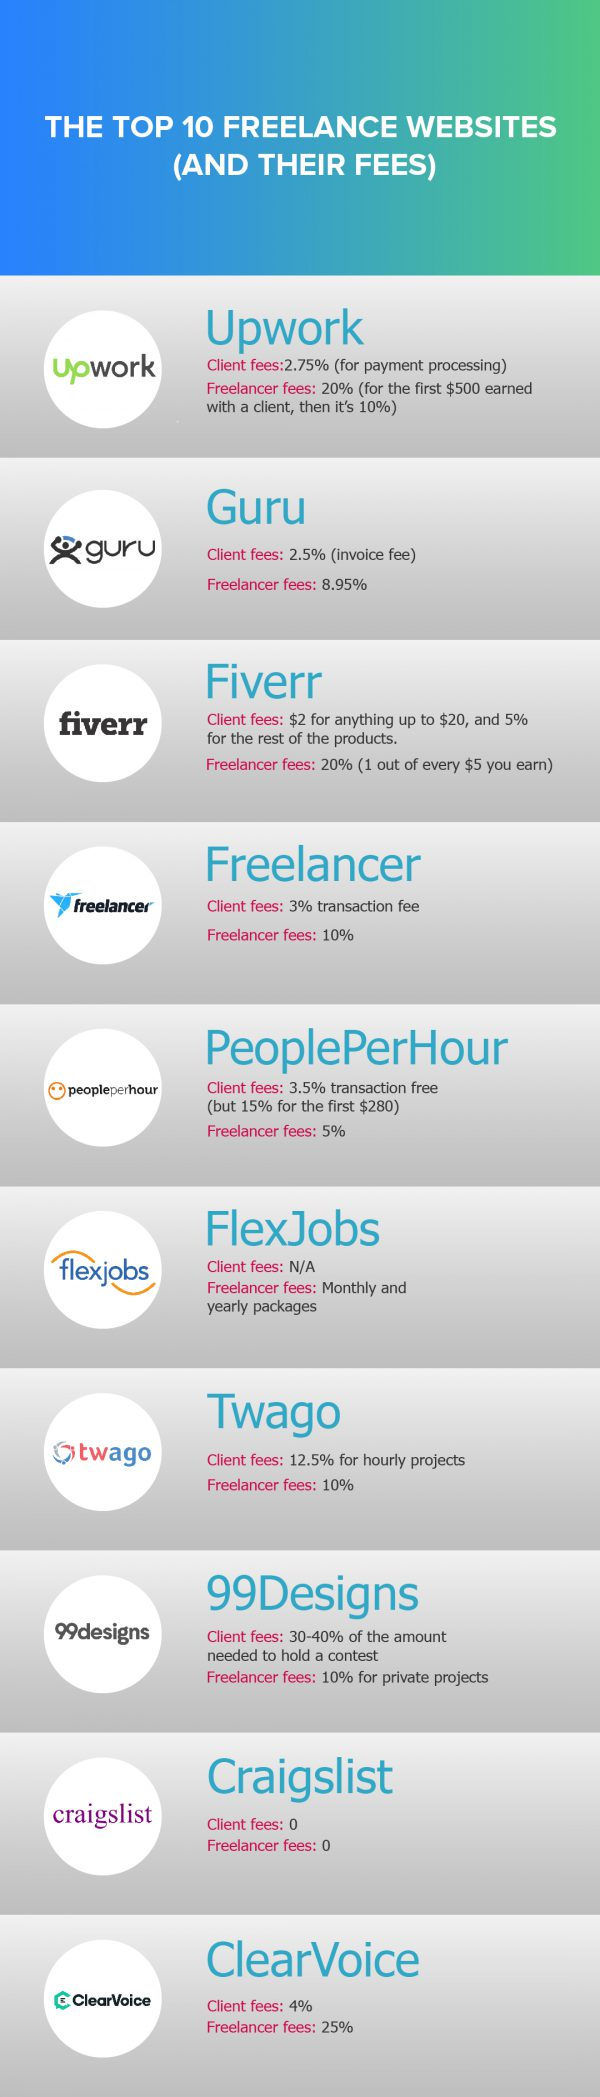 Top Freelance Websites - The Best Freelance Websites and Their Fees